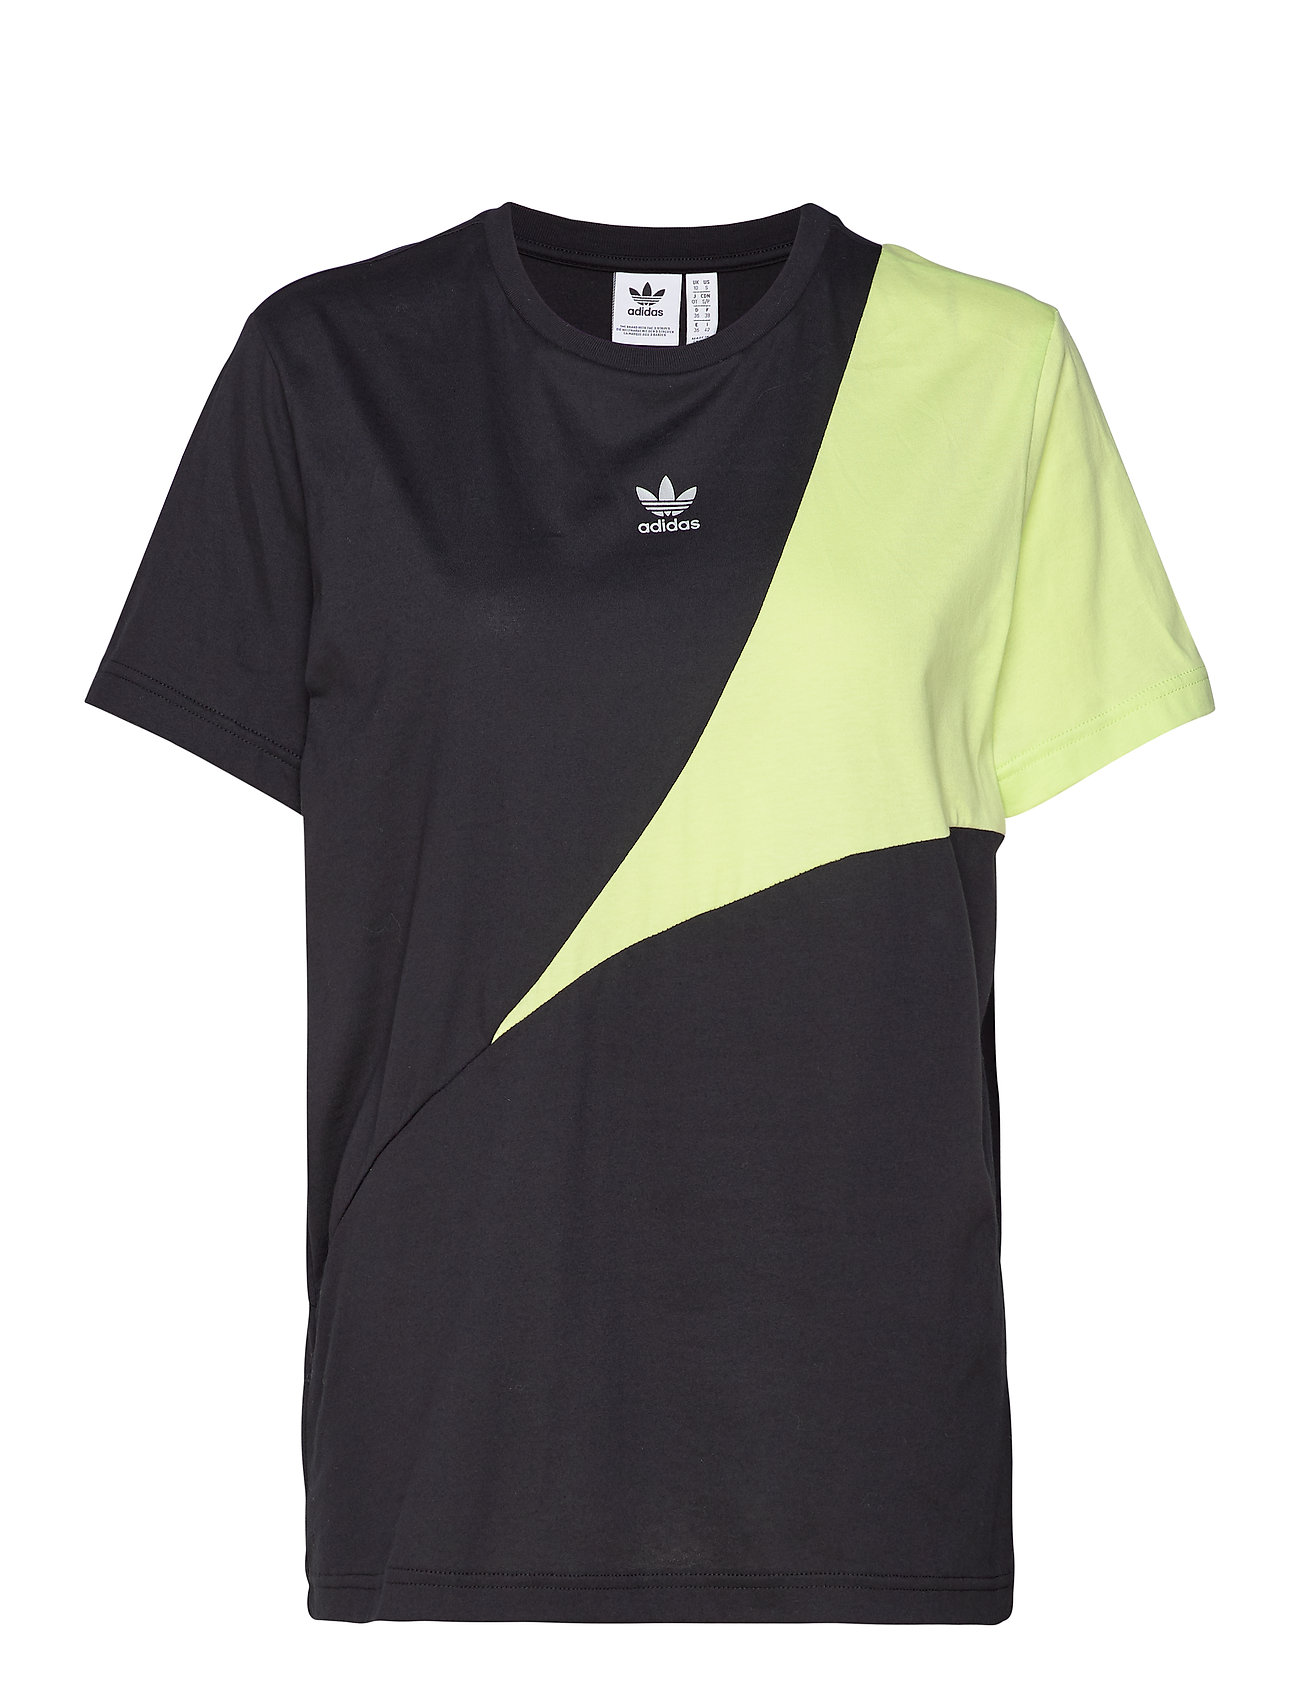 adidas Originals BOYFRIEND TEE - BLACK